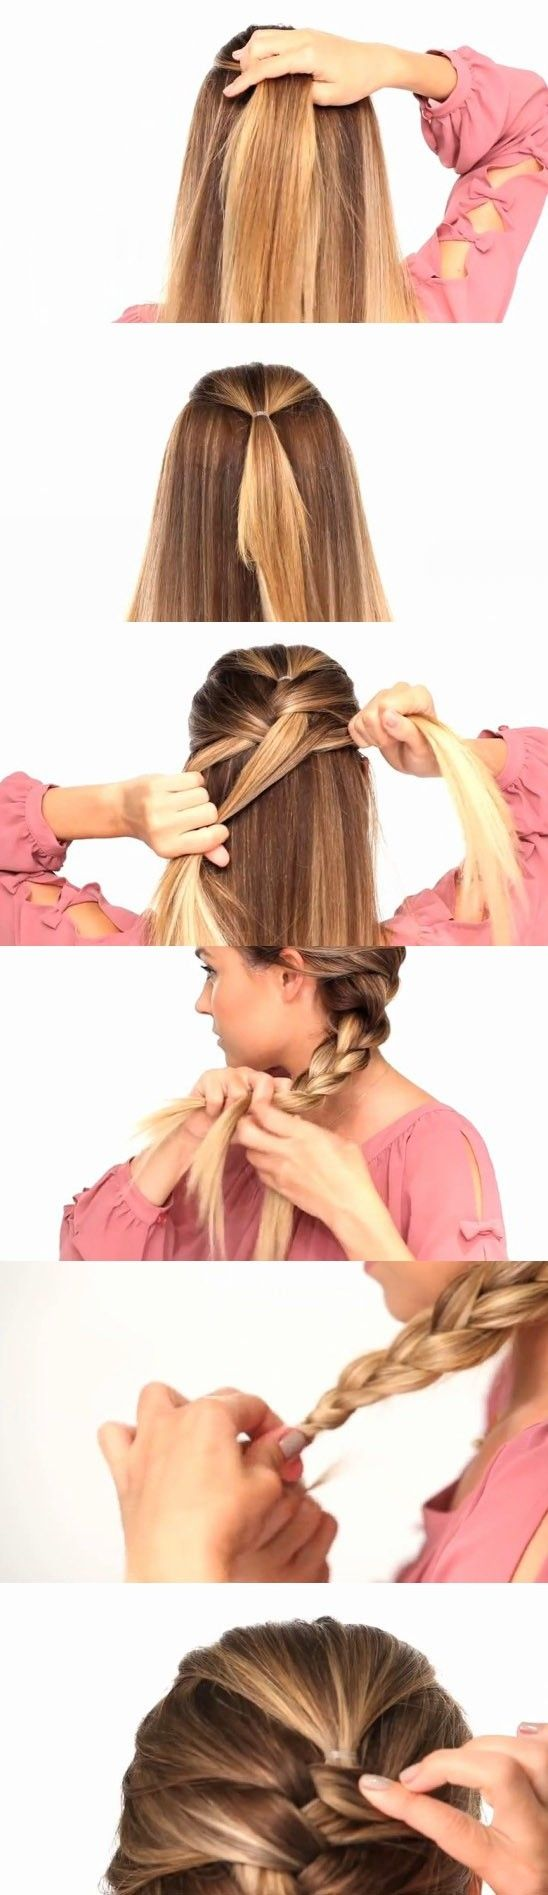 French Braid On Self Trick Hmmm This Is What I Call Cheating